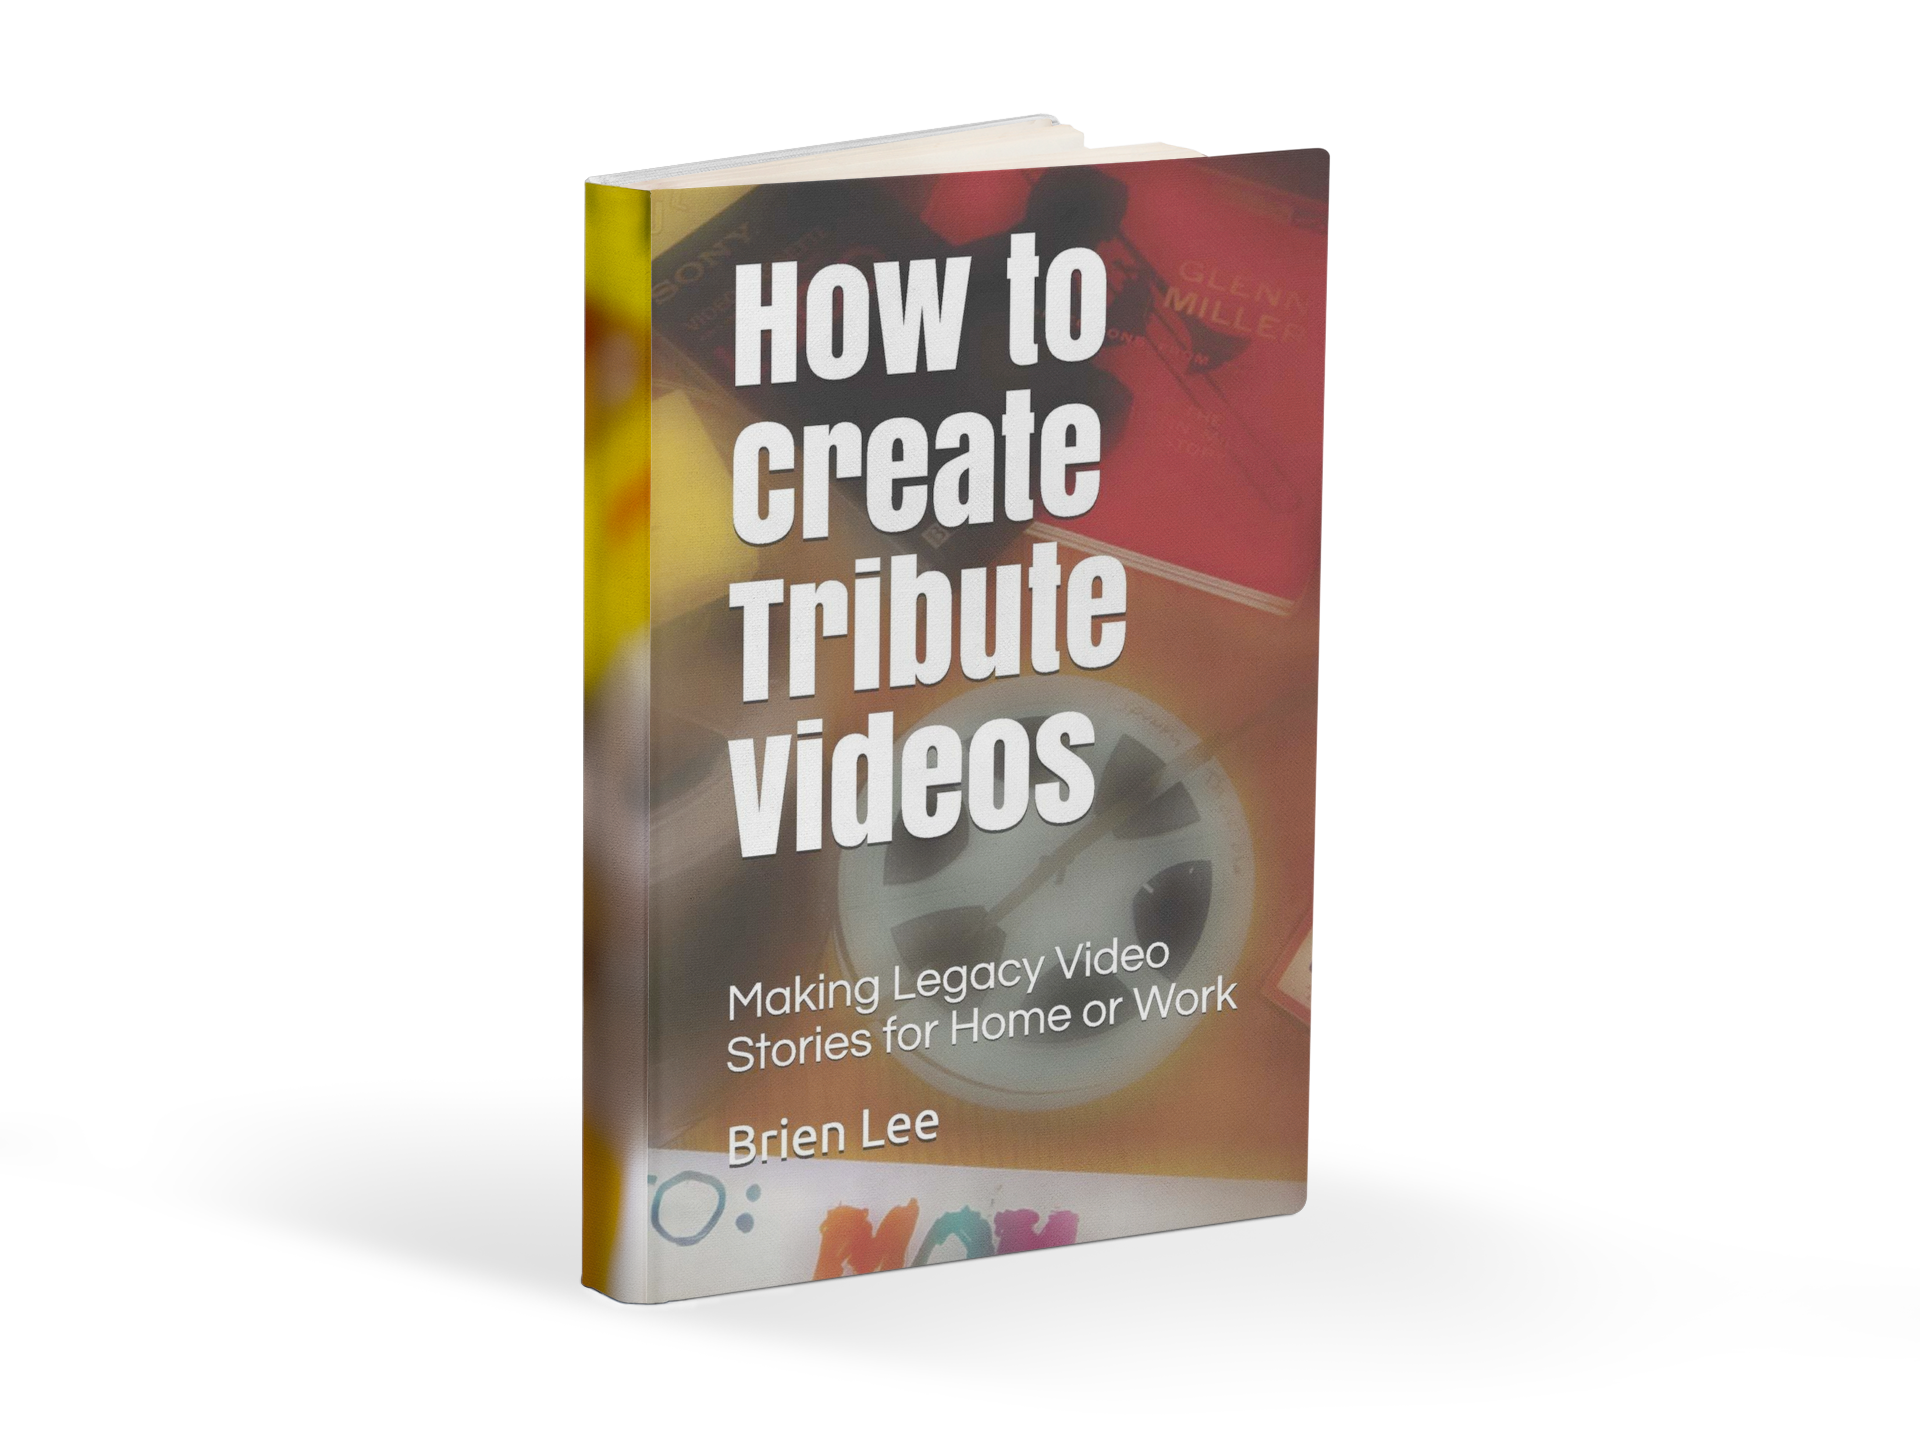 How to Create Tribute Videos Book by Brien Lee